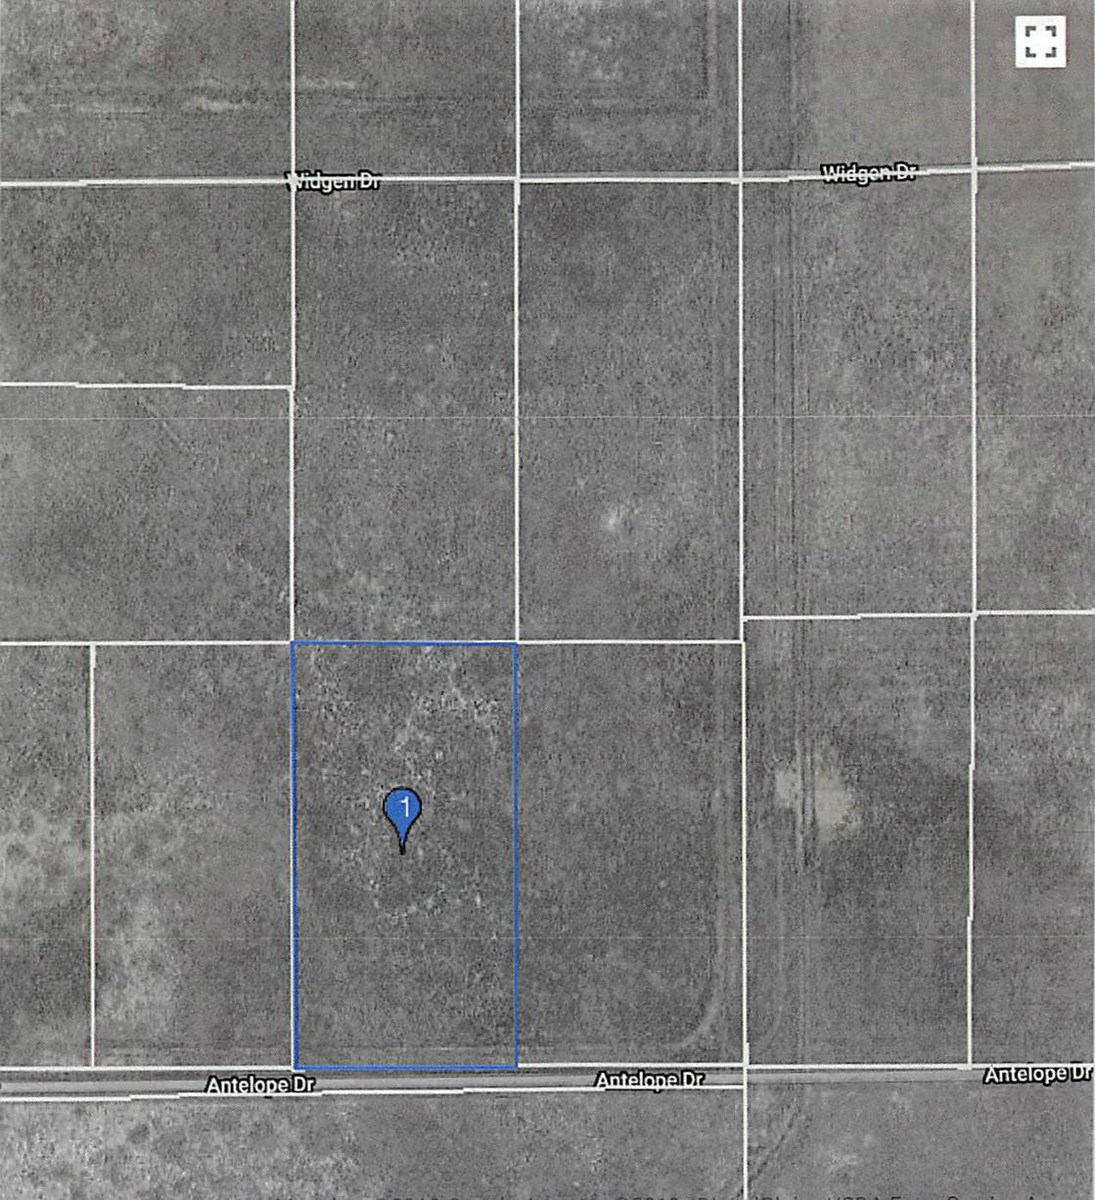 20+/- acres in beautiful Lassen County in view of the South